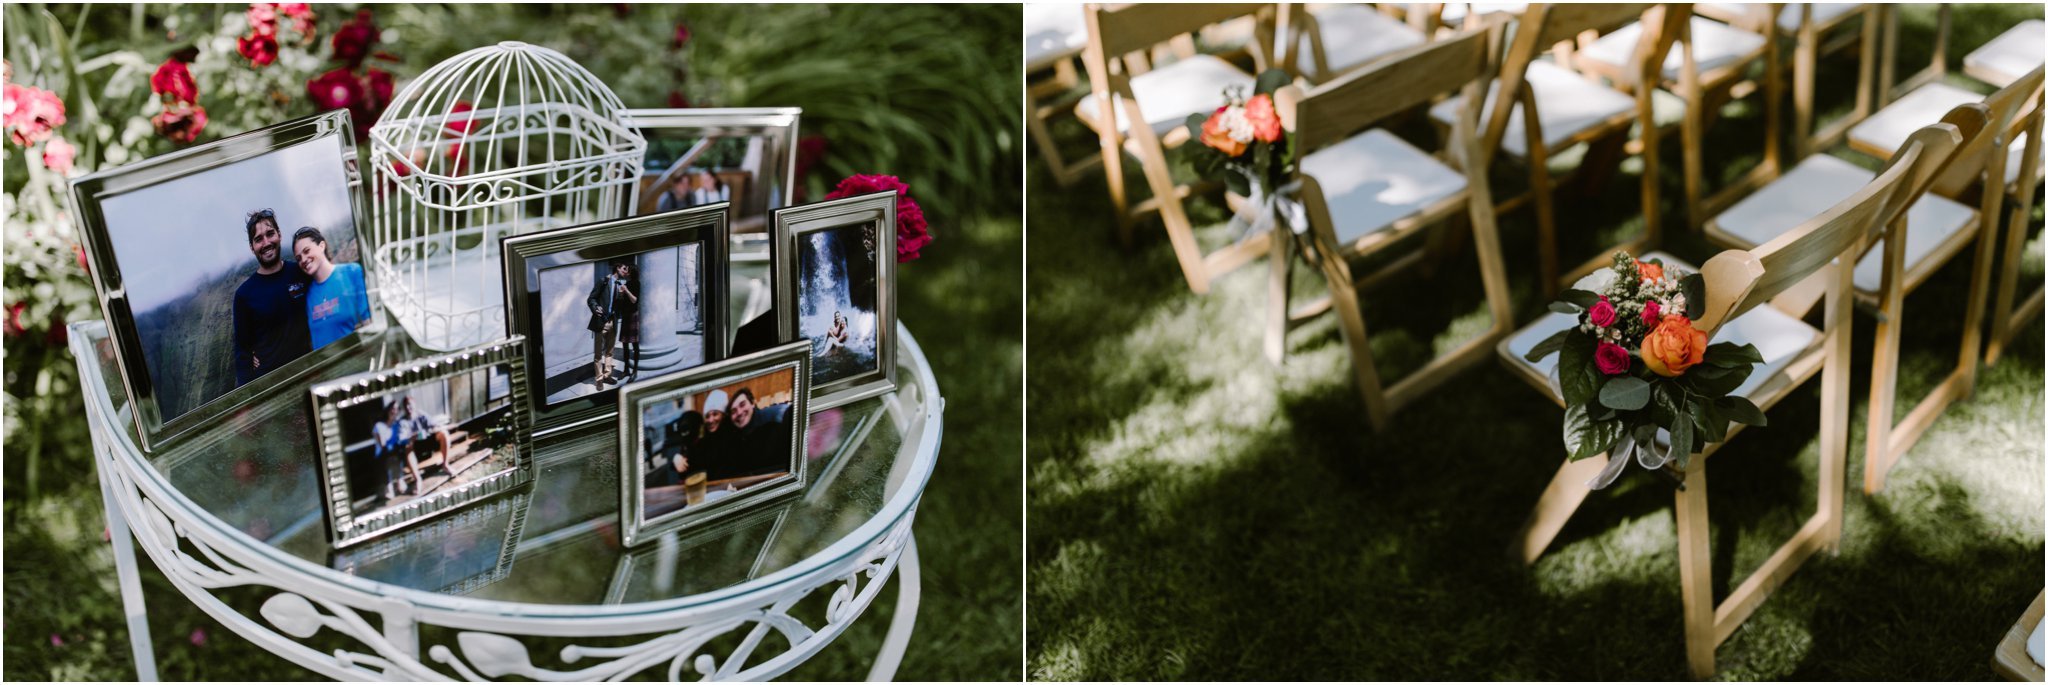 0233Los Poblanos Weddings Blue Rose Photography Studios